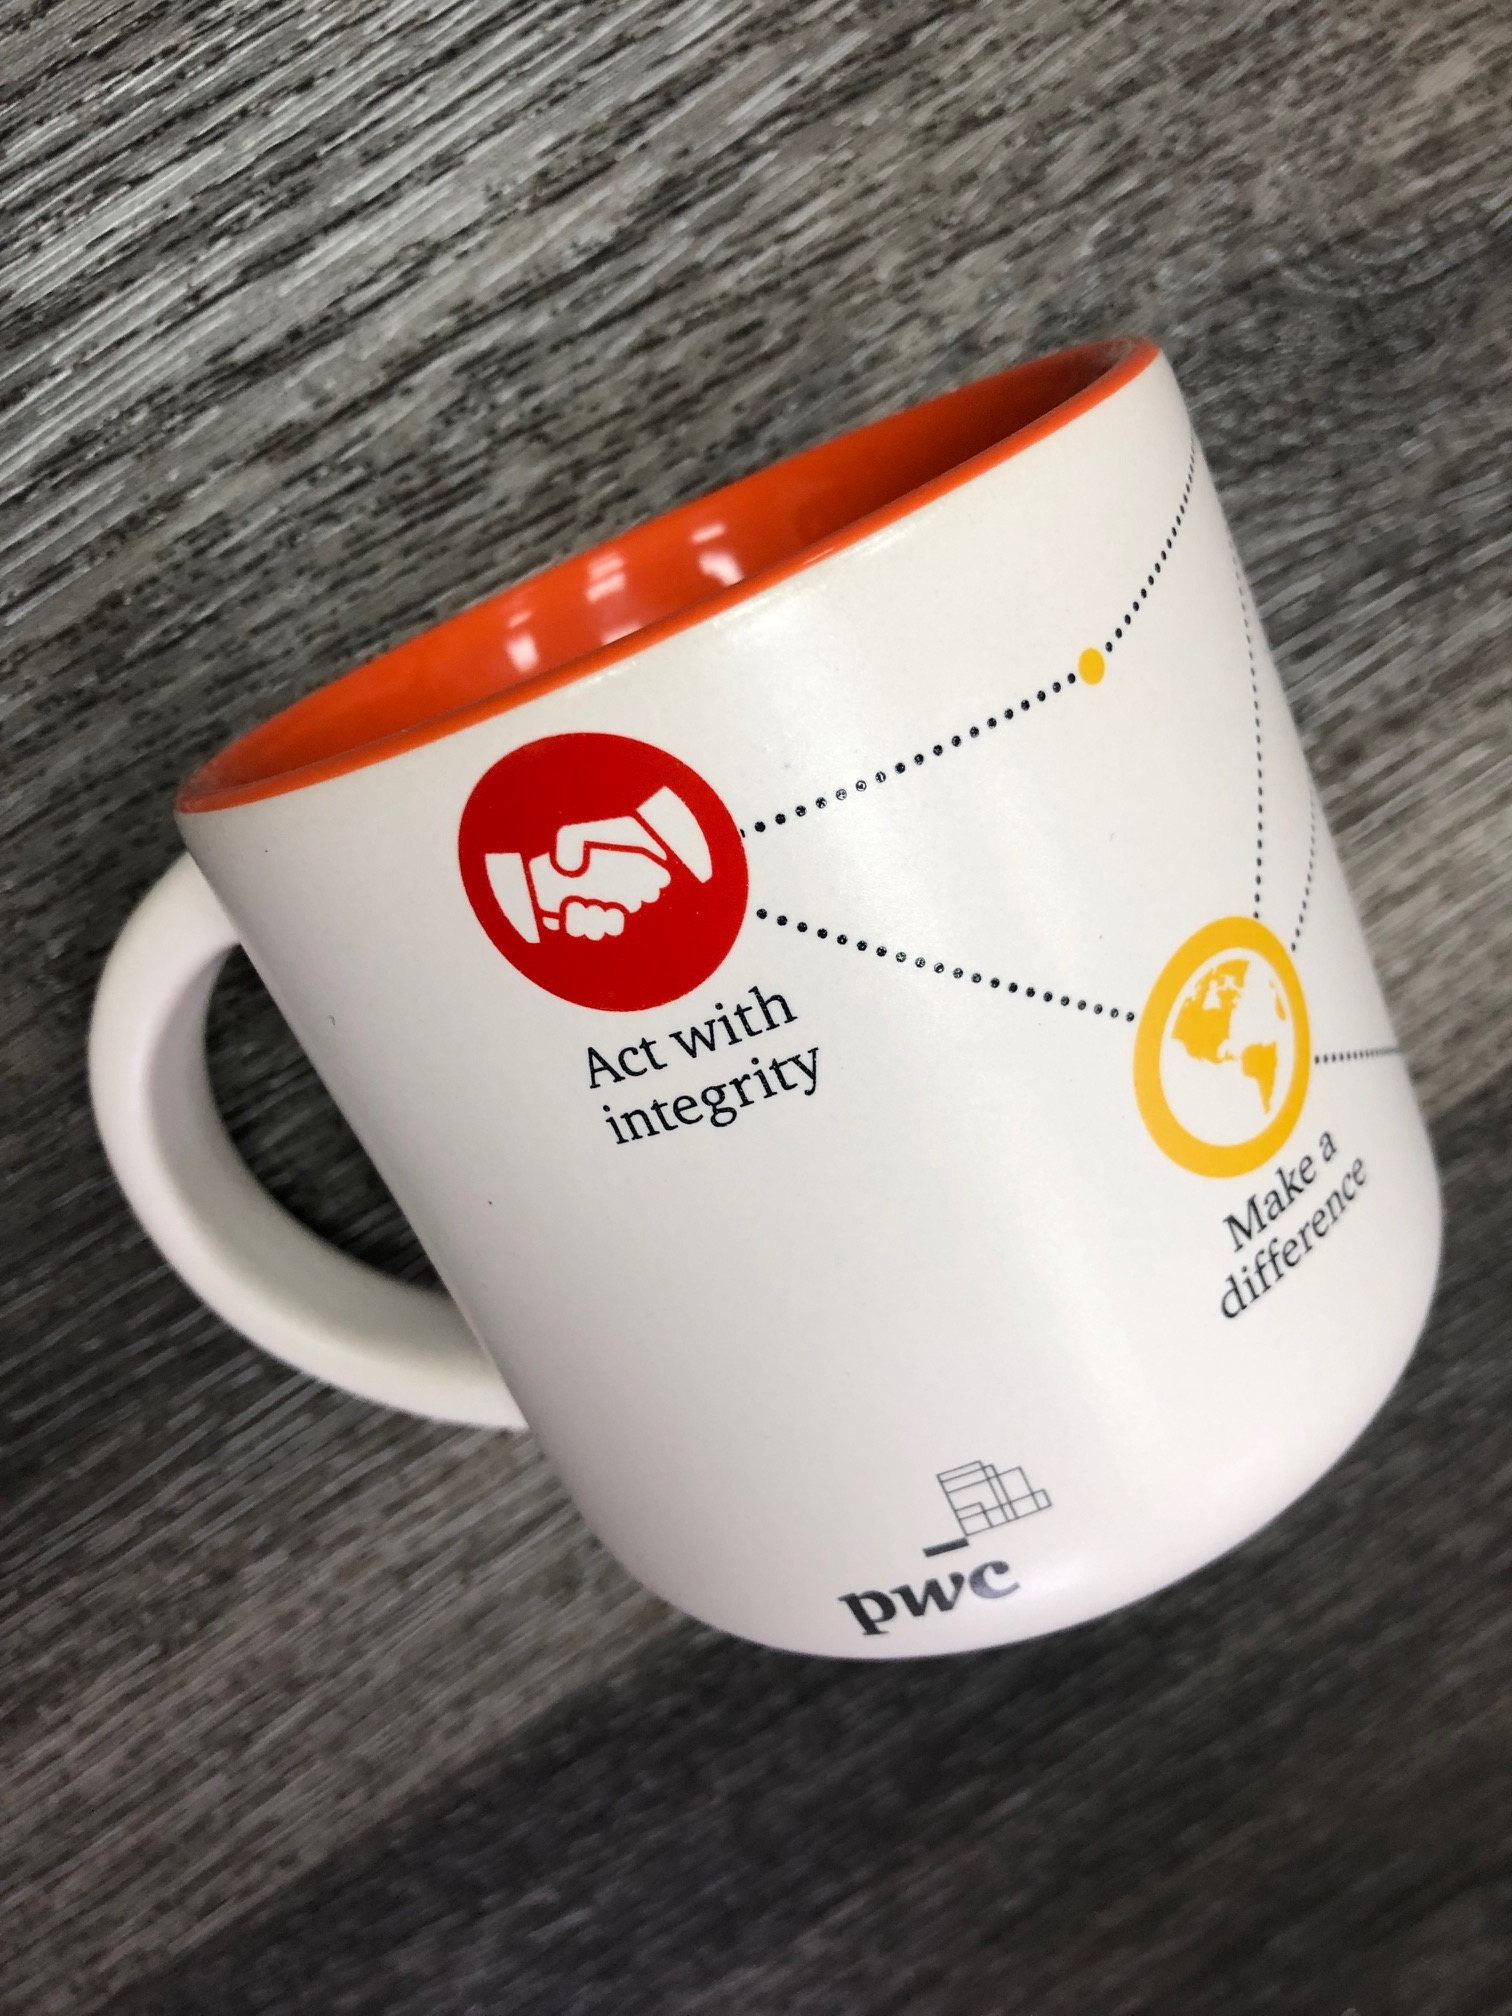 Branded cups (any pictures, graphics, logos)